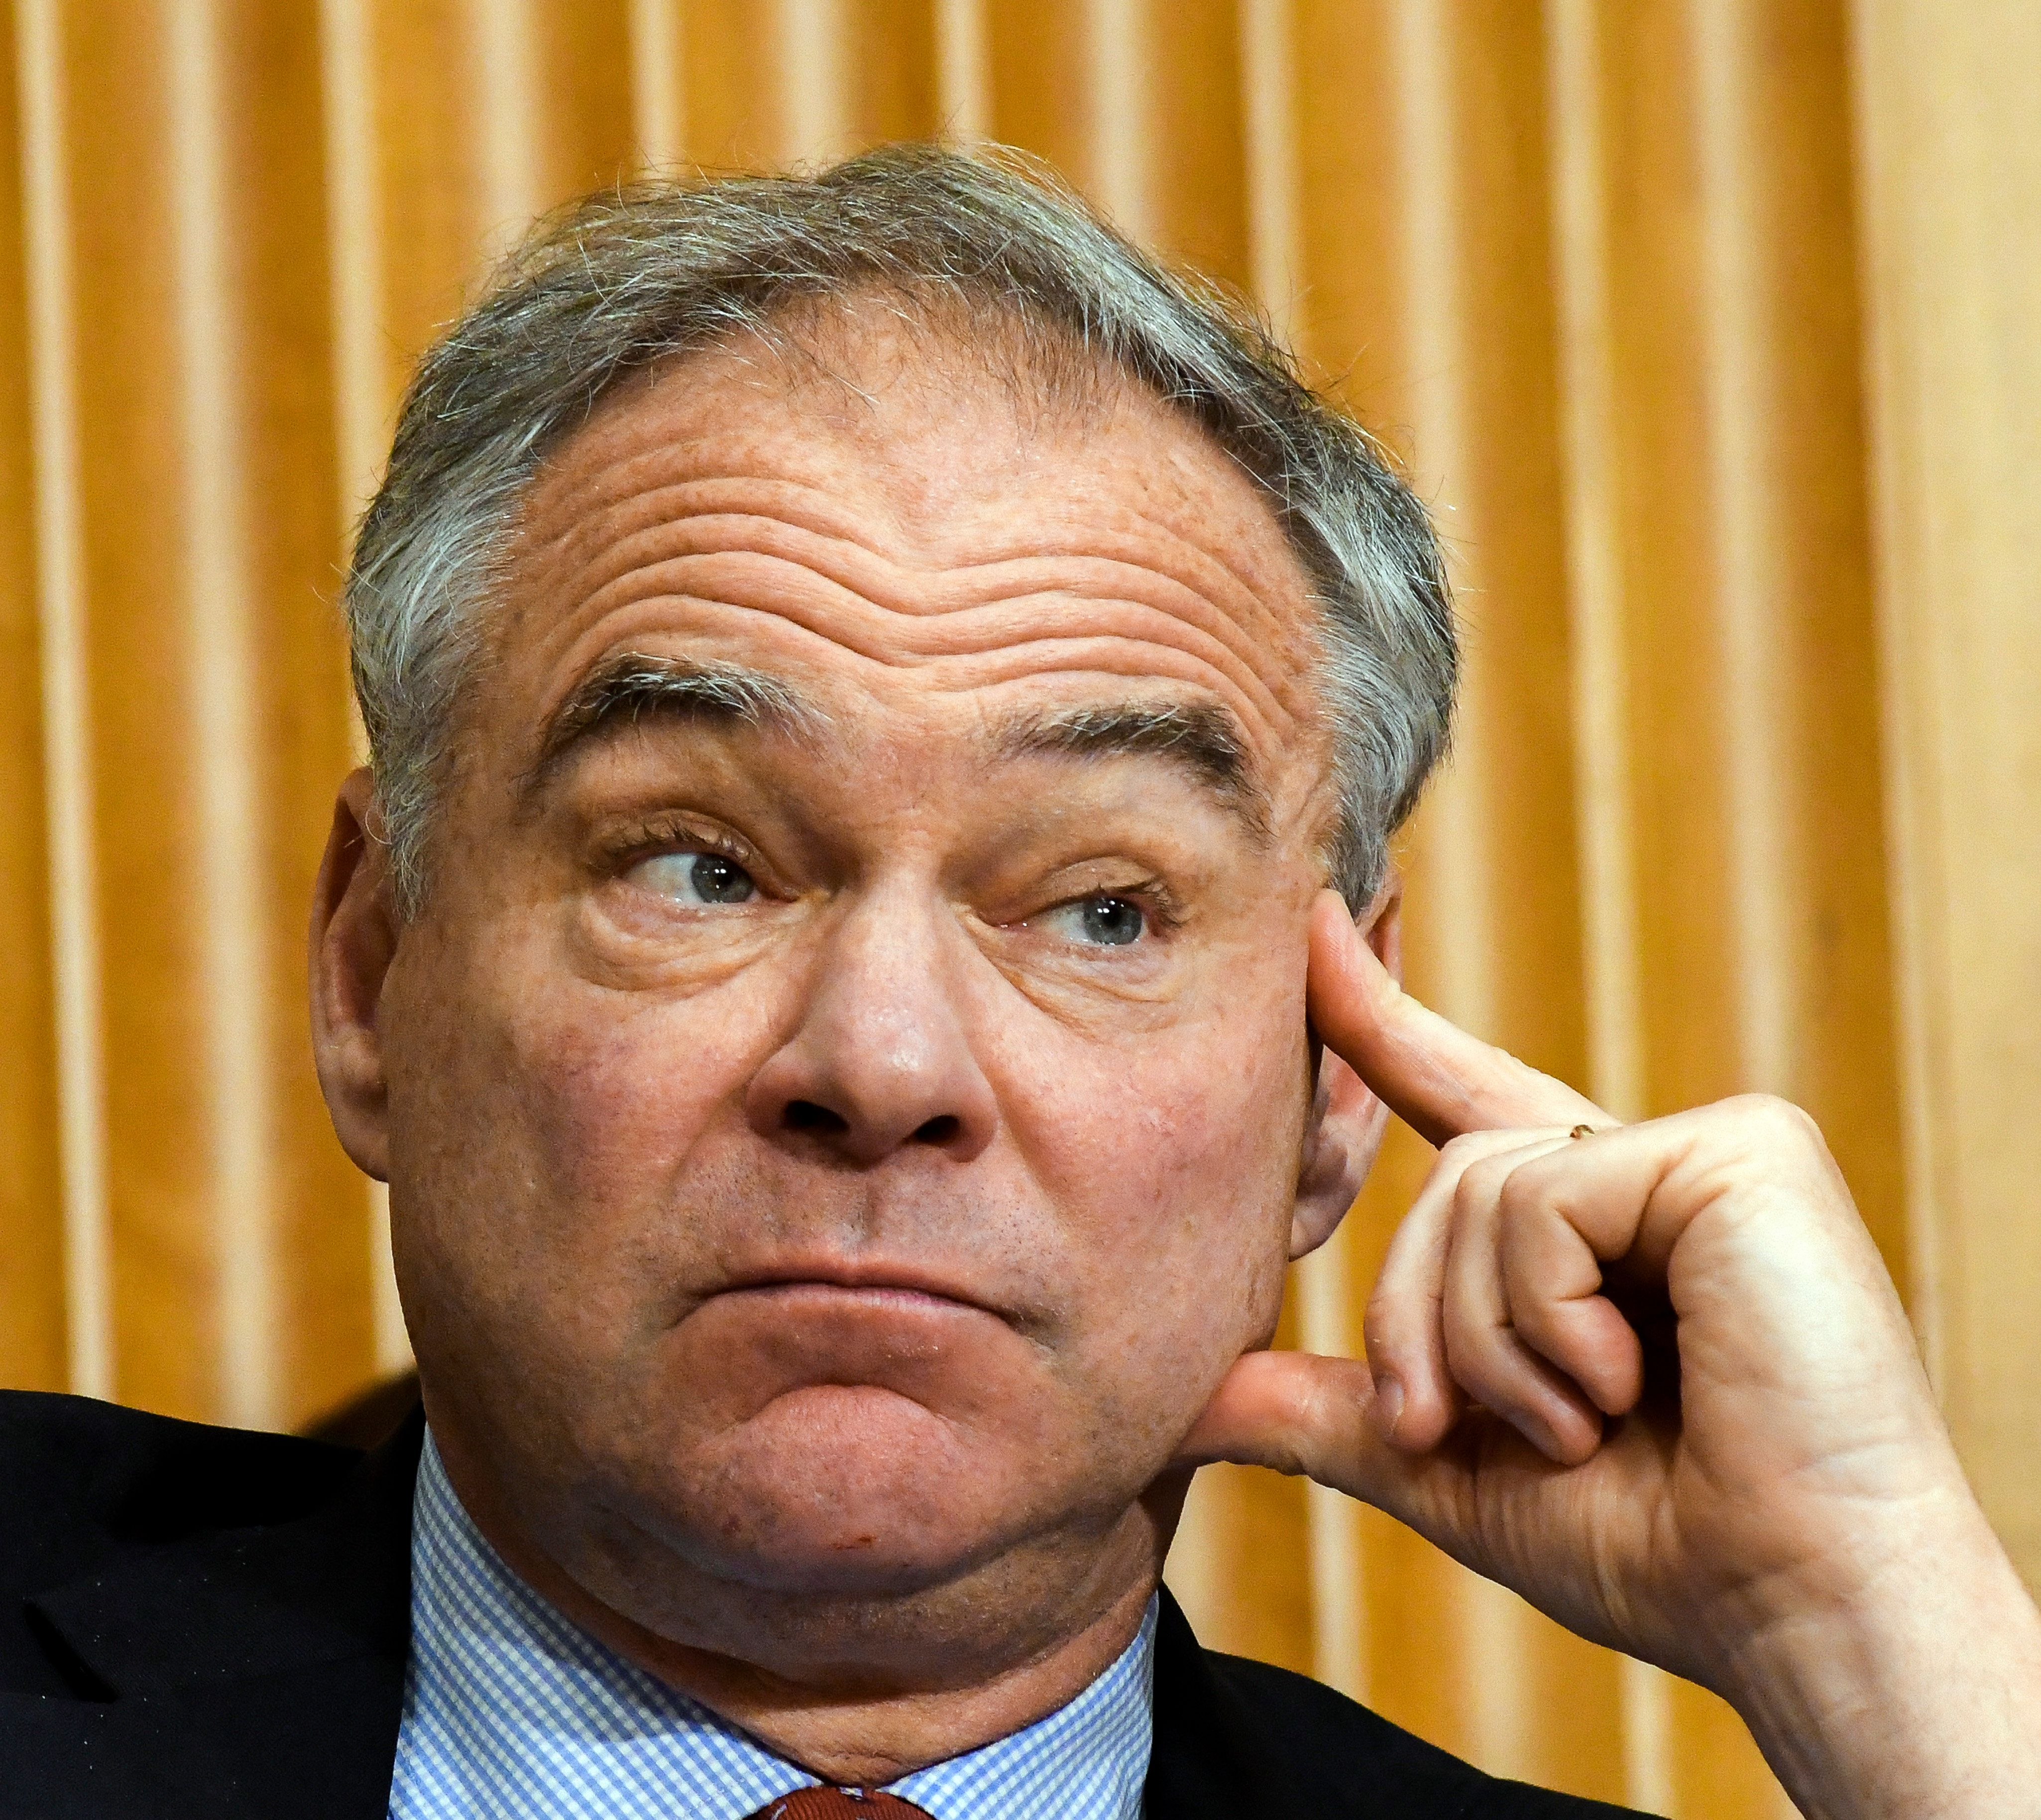 Close-up of American politician US Senator (and former Governor of Virginia) Tim Kaine as he listens to testimony during a Senate subcommittee hearing, Washington DC, June 13, 2017. (Photo by Mark Reinstein/Corbis Via Getty Images)